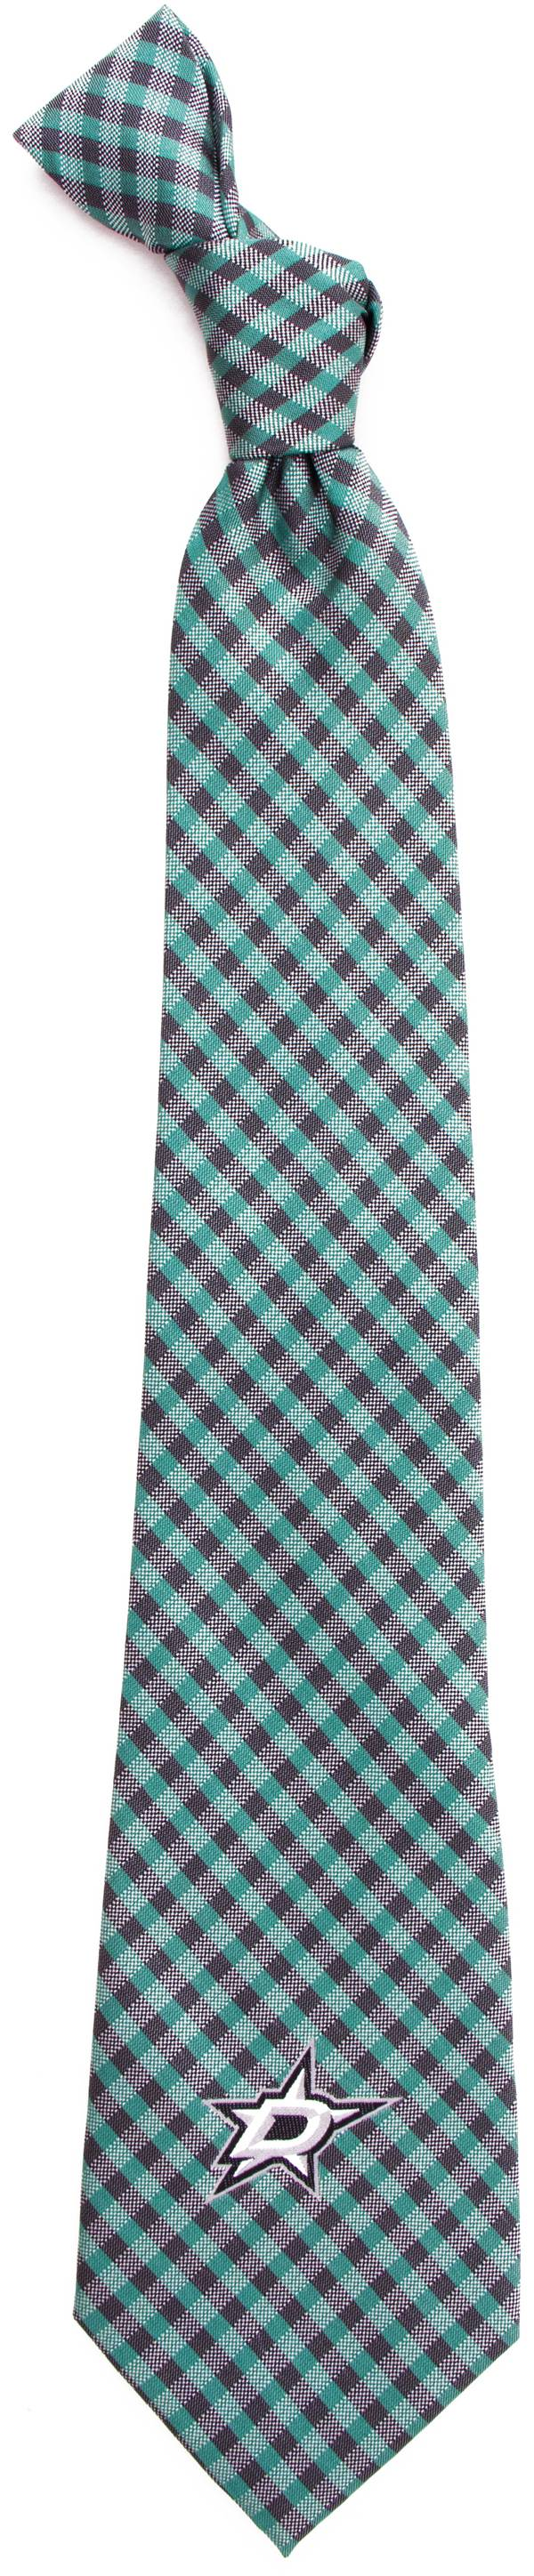 Eagles Wings Dallas Stars Gingham Necktie product image